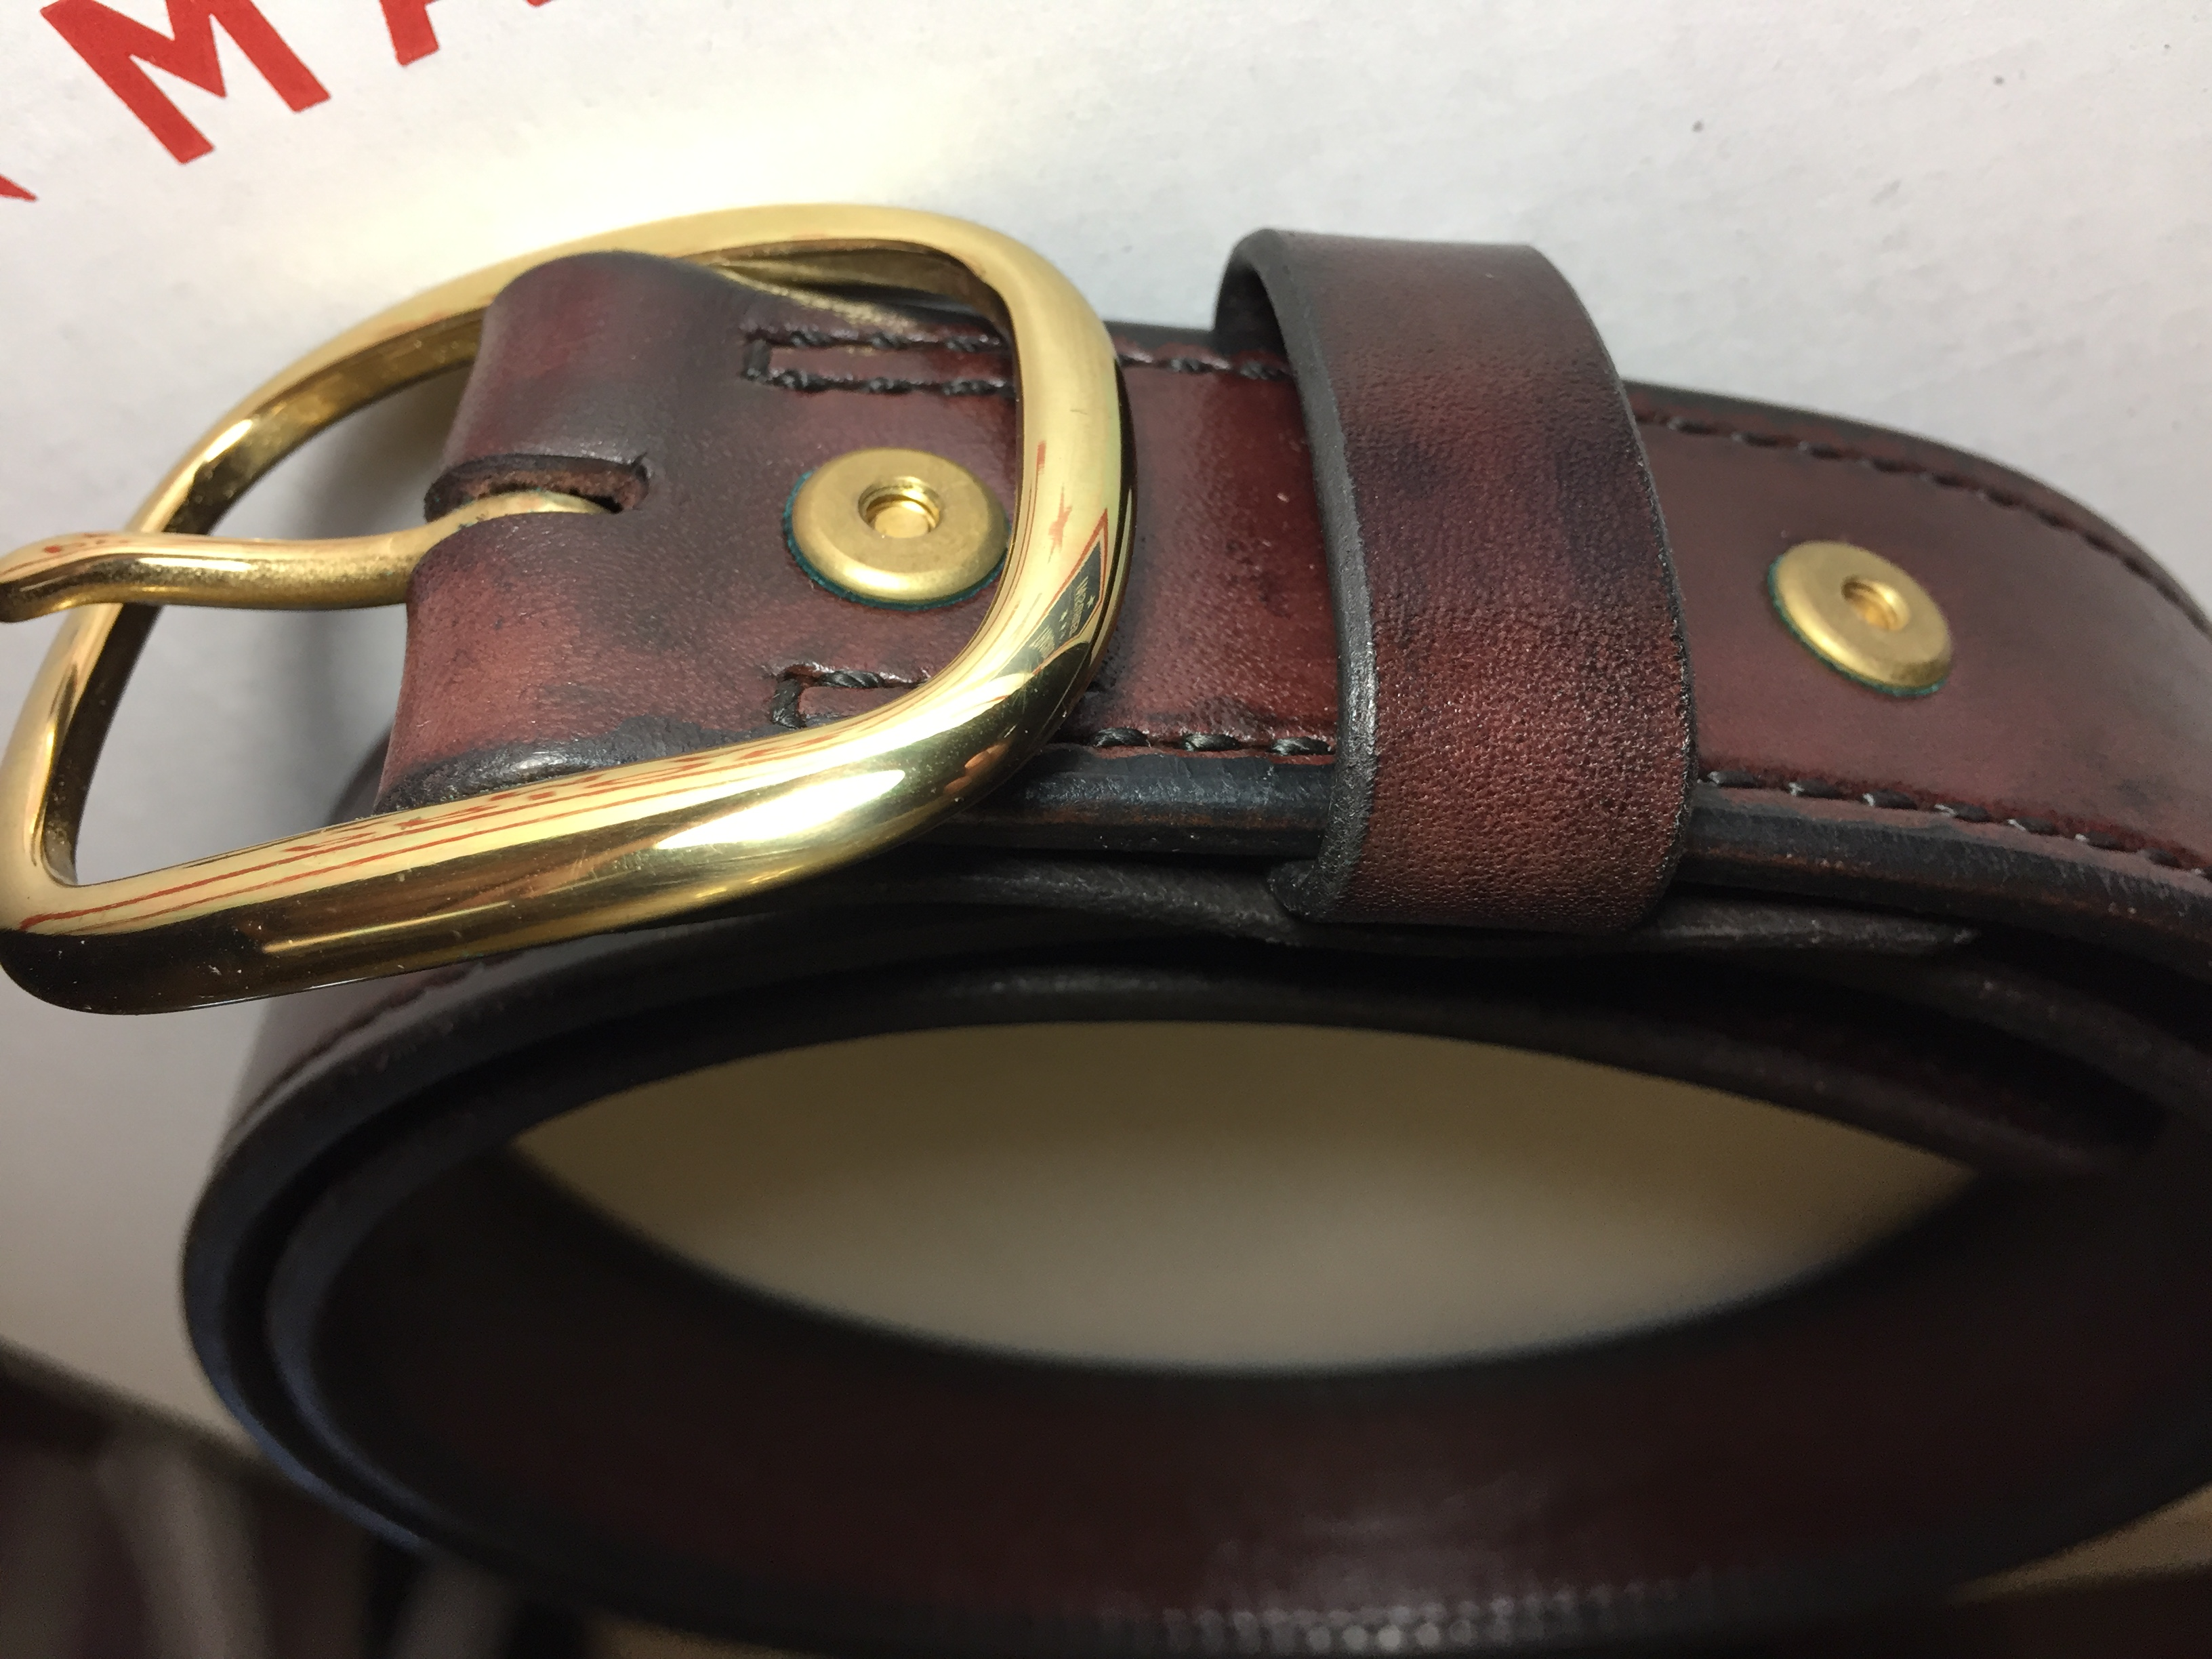 WTS: Several Milt Sparks holsters and a belt-img_0354.jpg